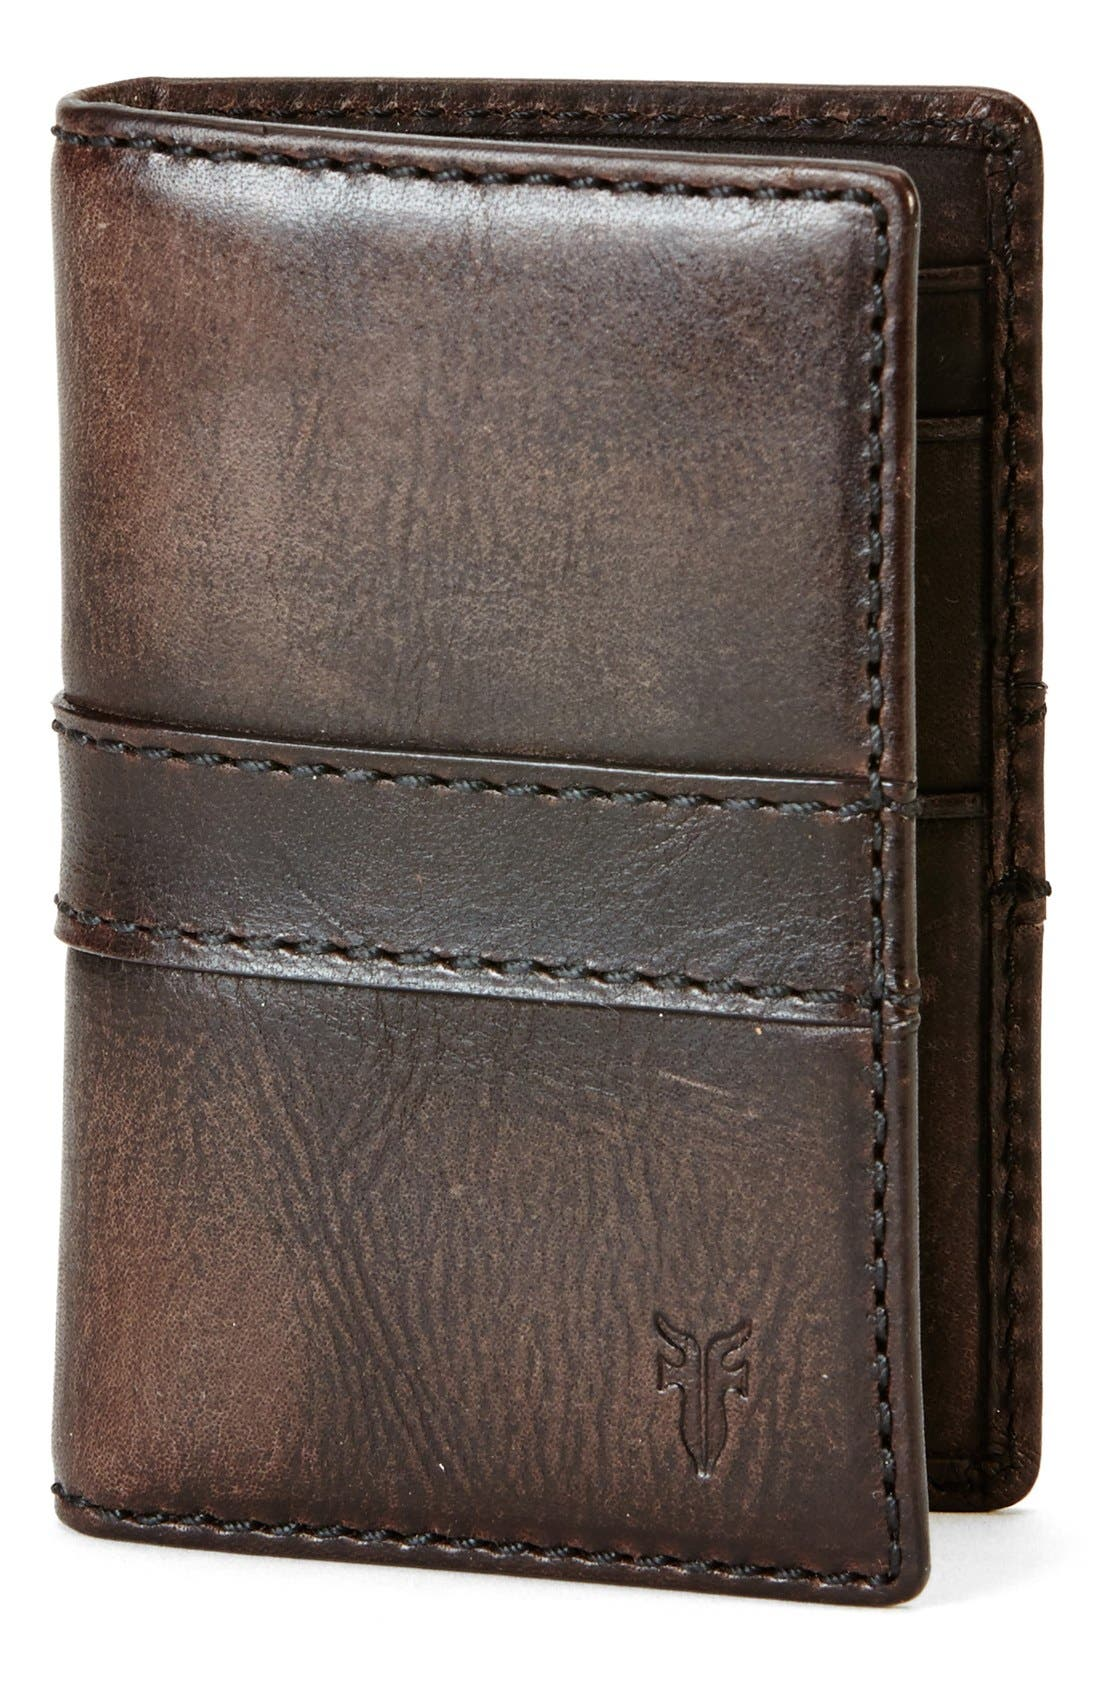 'Oliver' Leather Wallet,                             Main thumbnail 1, color,                             246